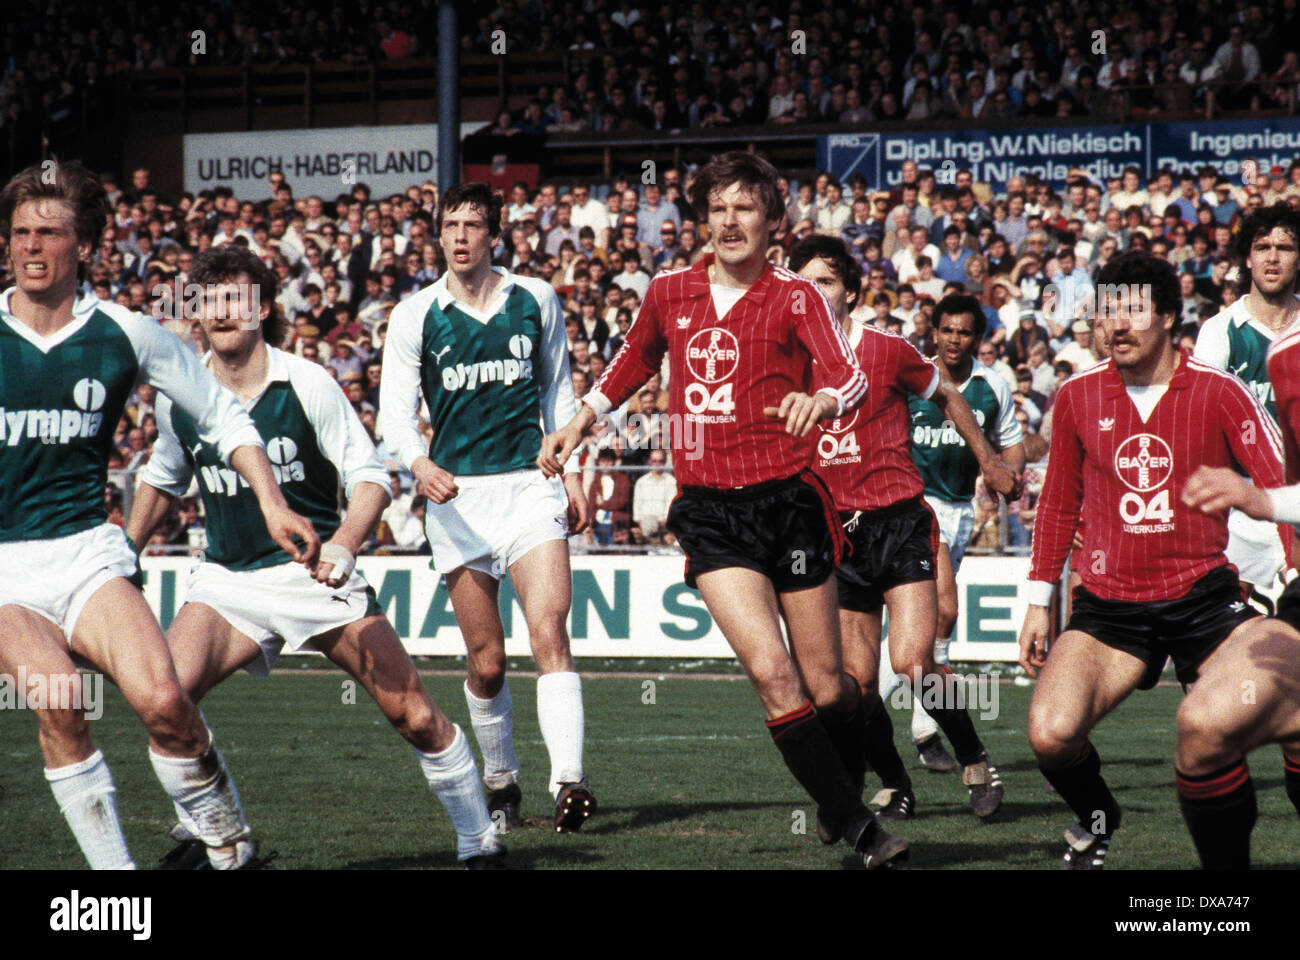 football, Bundesliga, 1983/1984, Ulrich Haberland Stadium, Bayer 04 Leverkusen versus SV Werder Bremen 0:0, scene of the match, f.l.t.r. Wolfgang Sidka (Werder), Rudi Voeller (Werder), Frank Neubarth (Werder), Juergen Gelsdorf (Bayer), Rudolf Wojtowicz (B - Stock Image